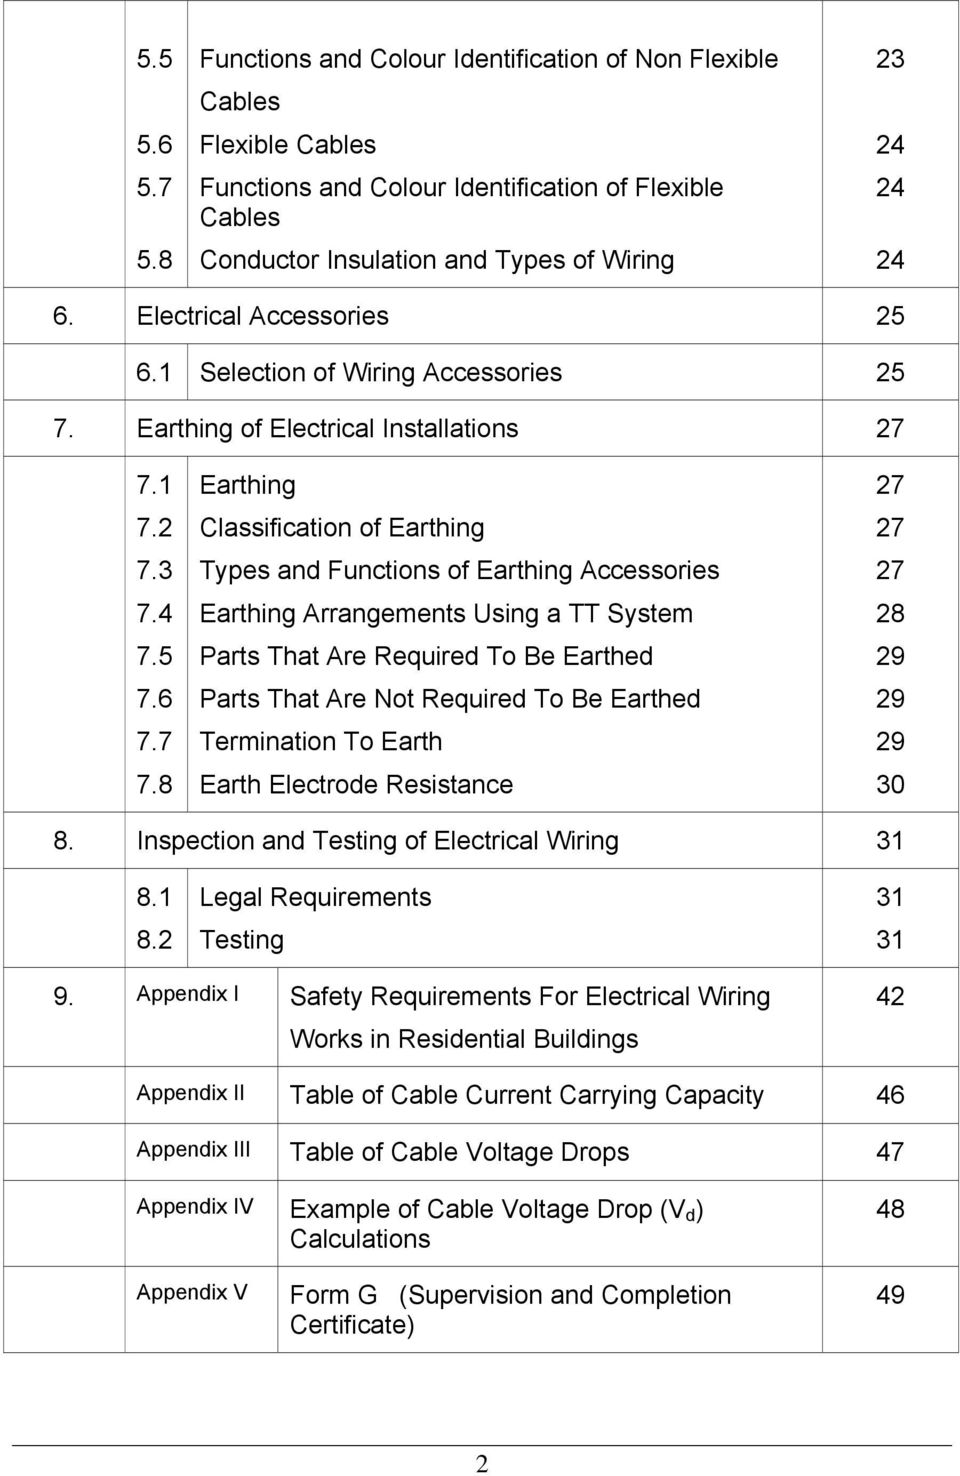 GUIDELINES FOR ELECTRICAL WIRING IN RESIDENTIAL BUILDINGS - PDF